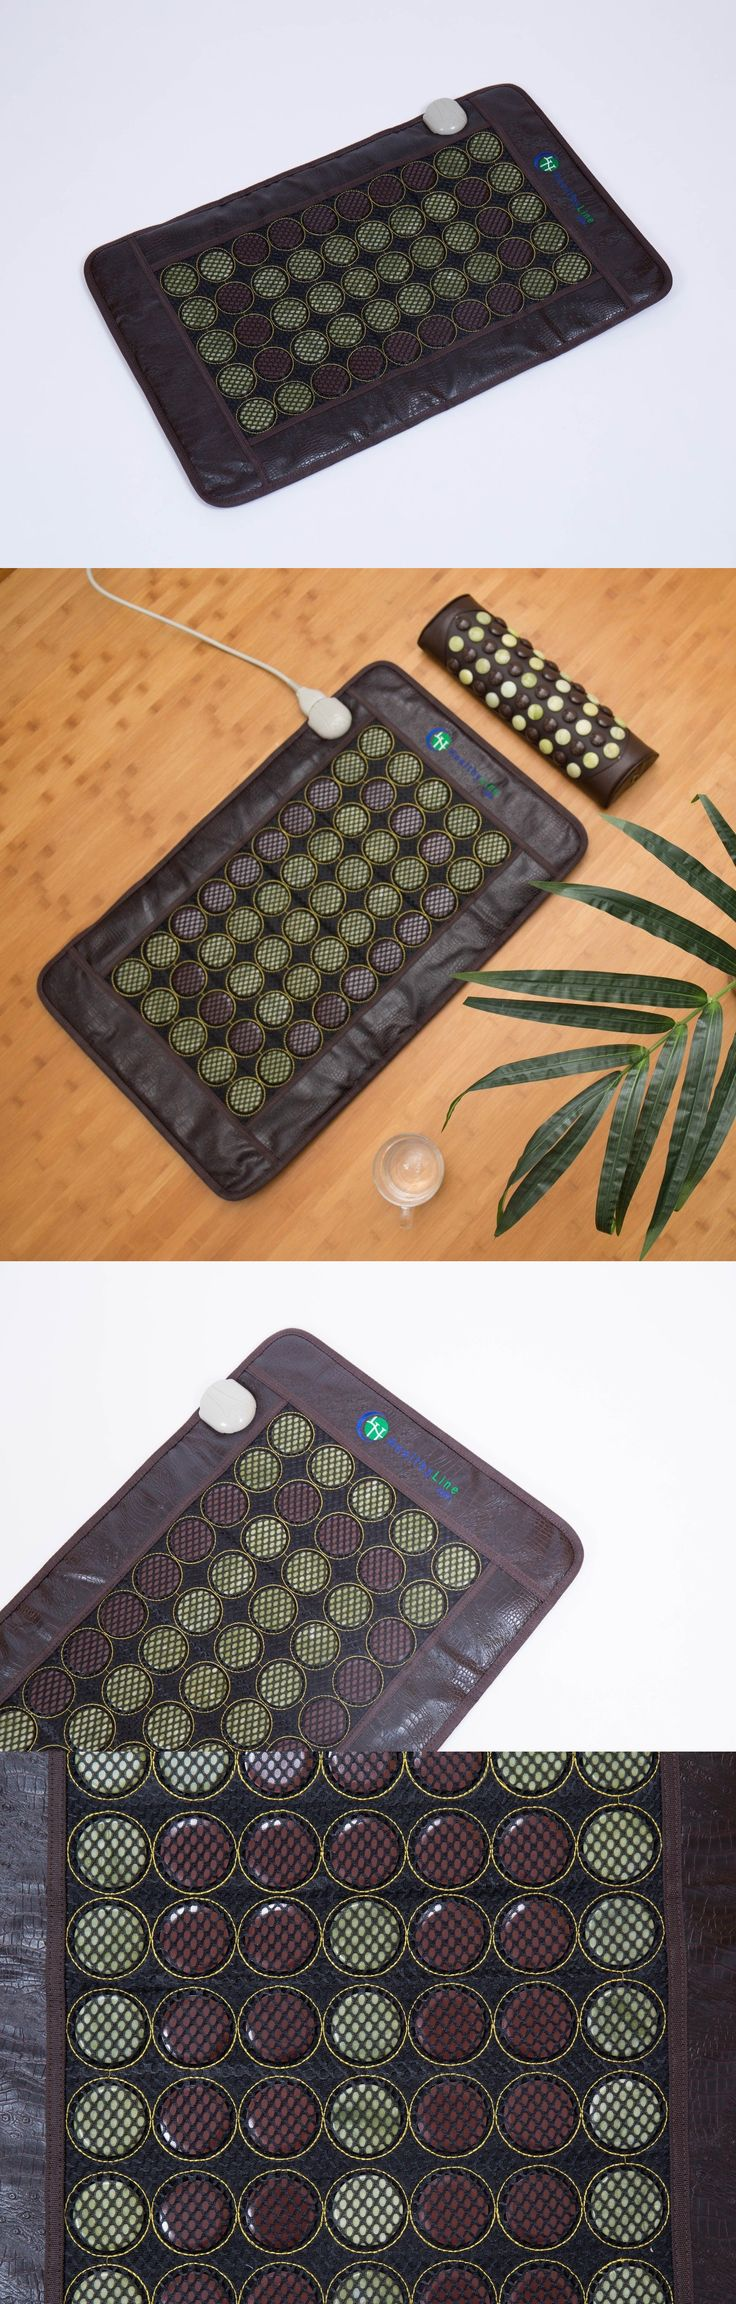 Massage Stones and Rocks: Jade Tourmaline Stones Light Mat Negative Ions Infrared Spa Heating Pad 32X20 -> BUY IT NOW ONLY: $130 on eBay!